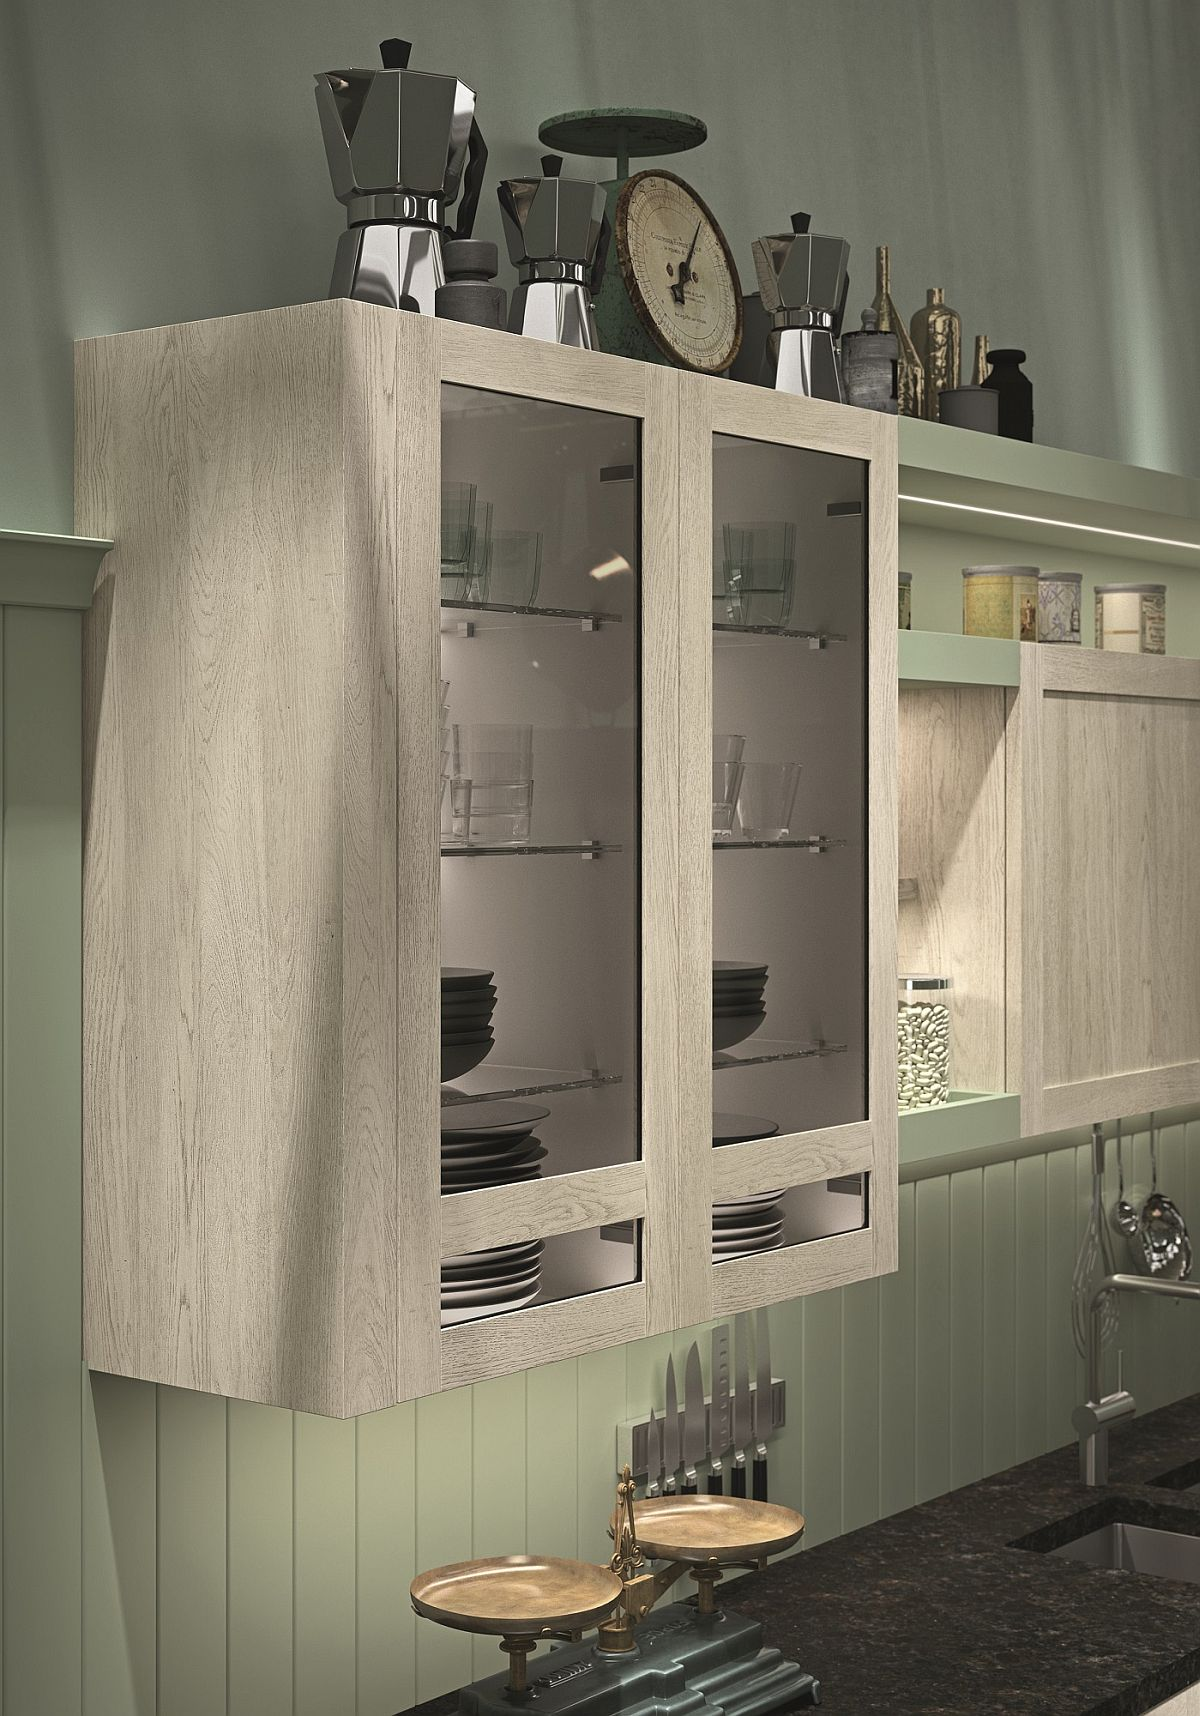 Wall-mounted kitchen cabinet with glass doors